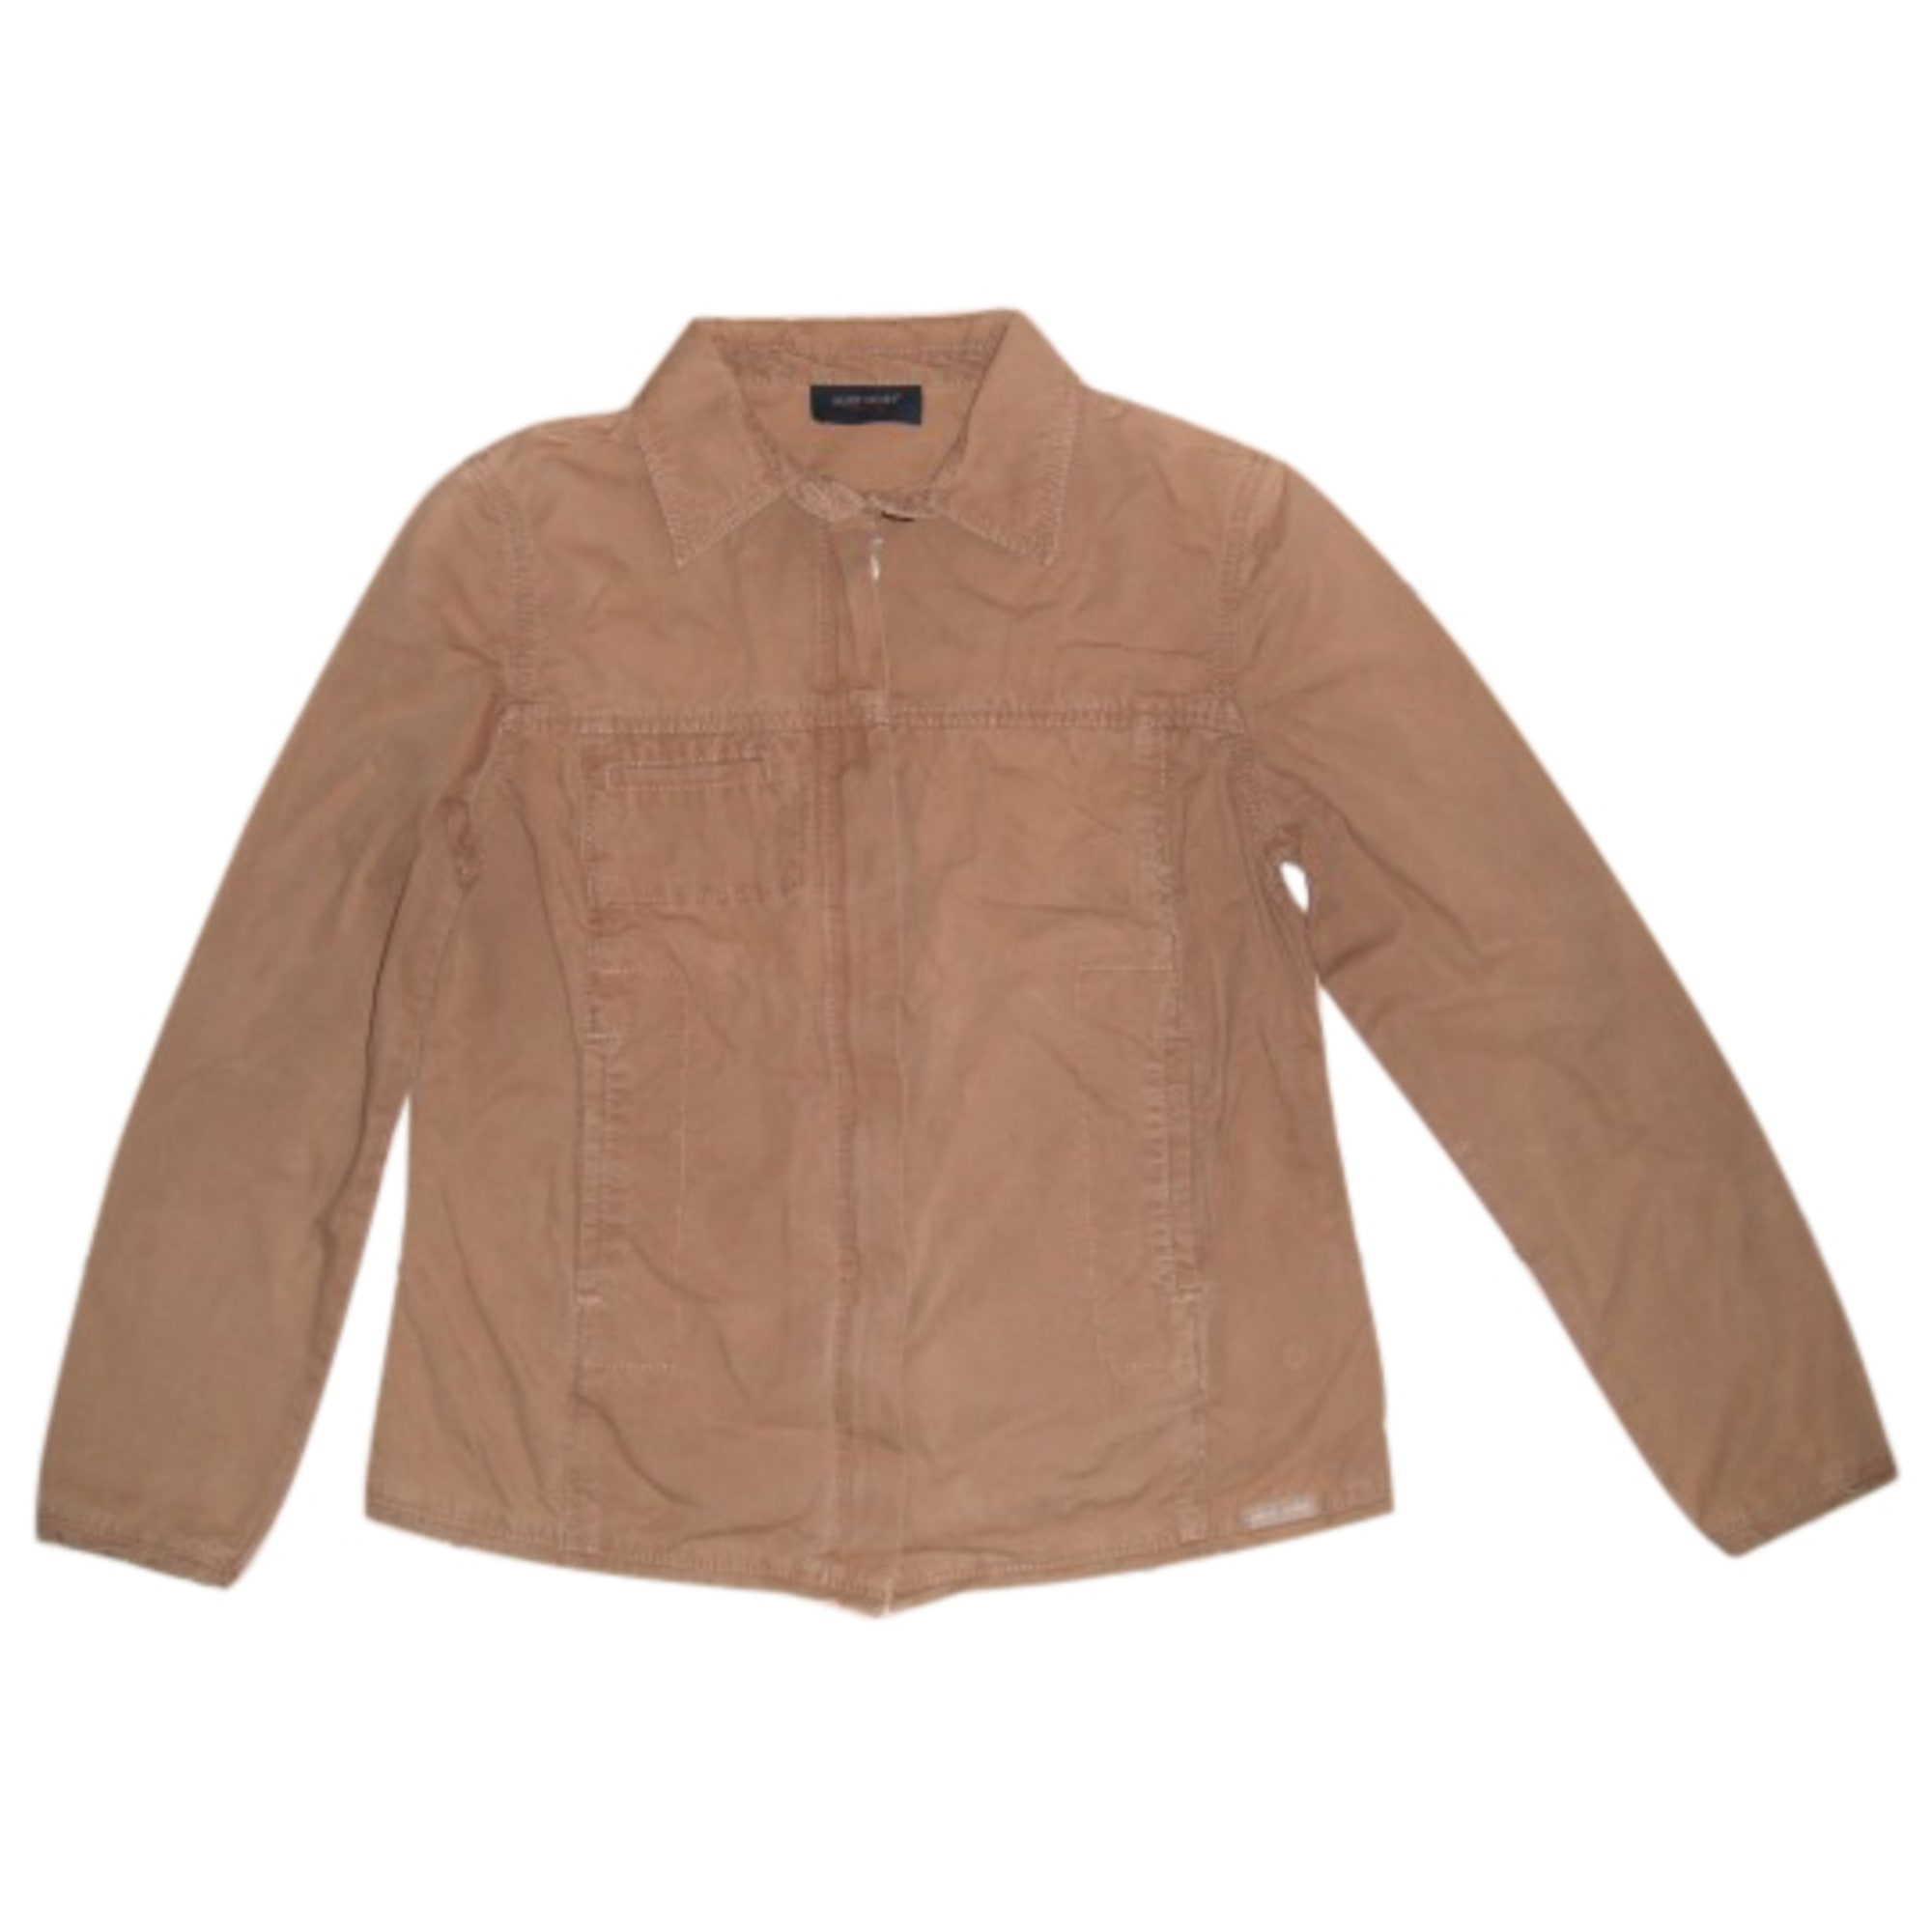 Blouson SAINT JAMES Beige, camel